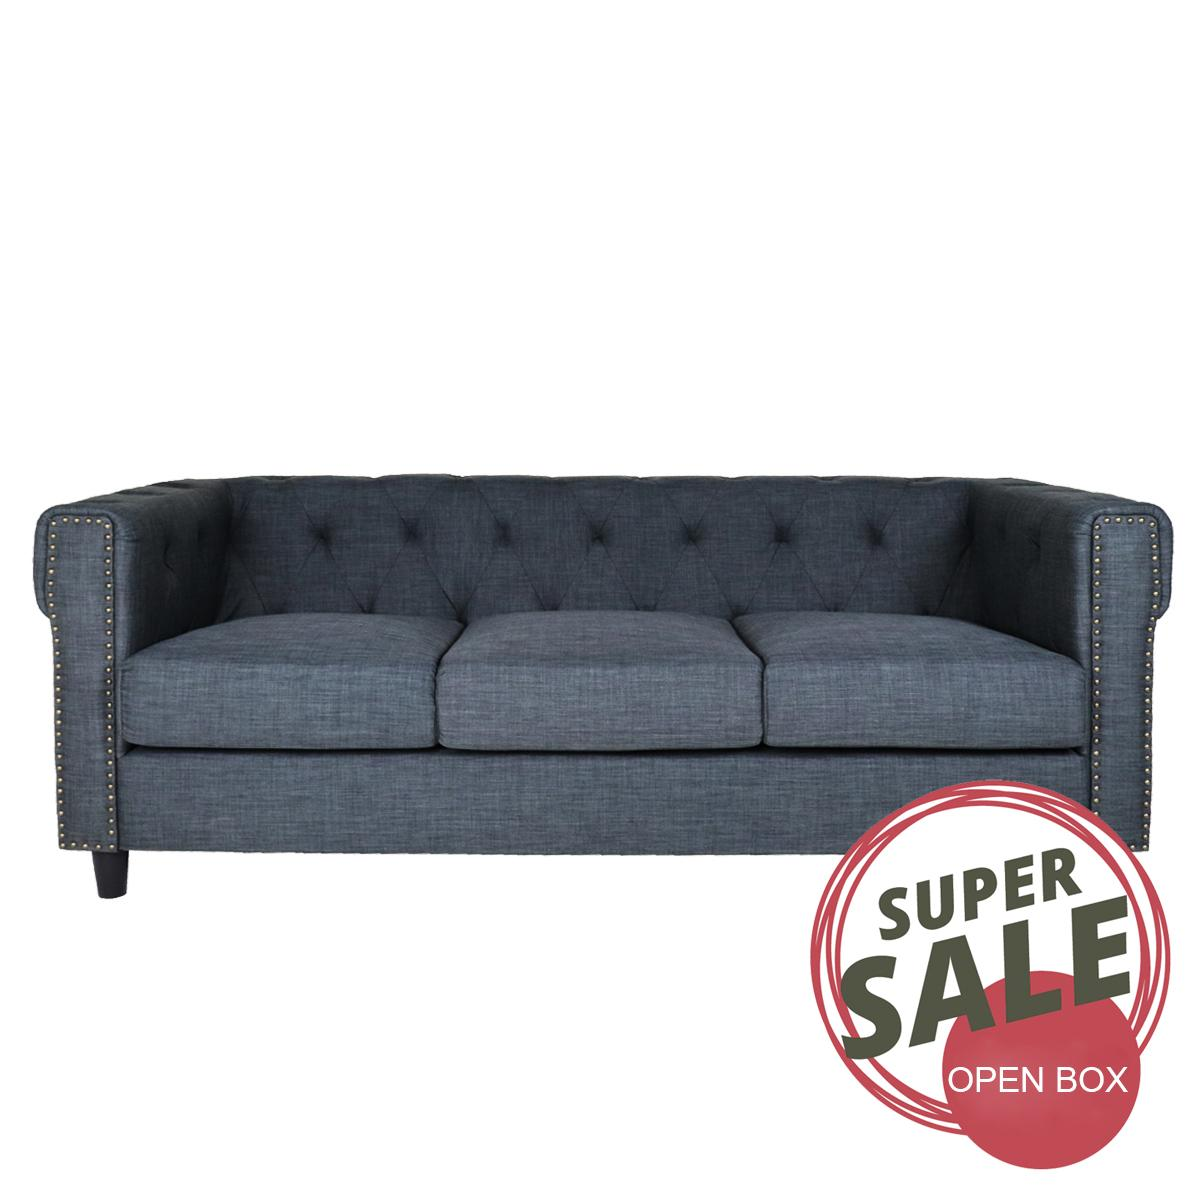 3 Seater Luxury Fabric Sofa. Open Box Sale by H&S